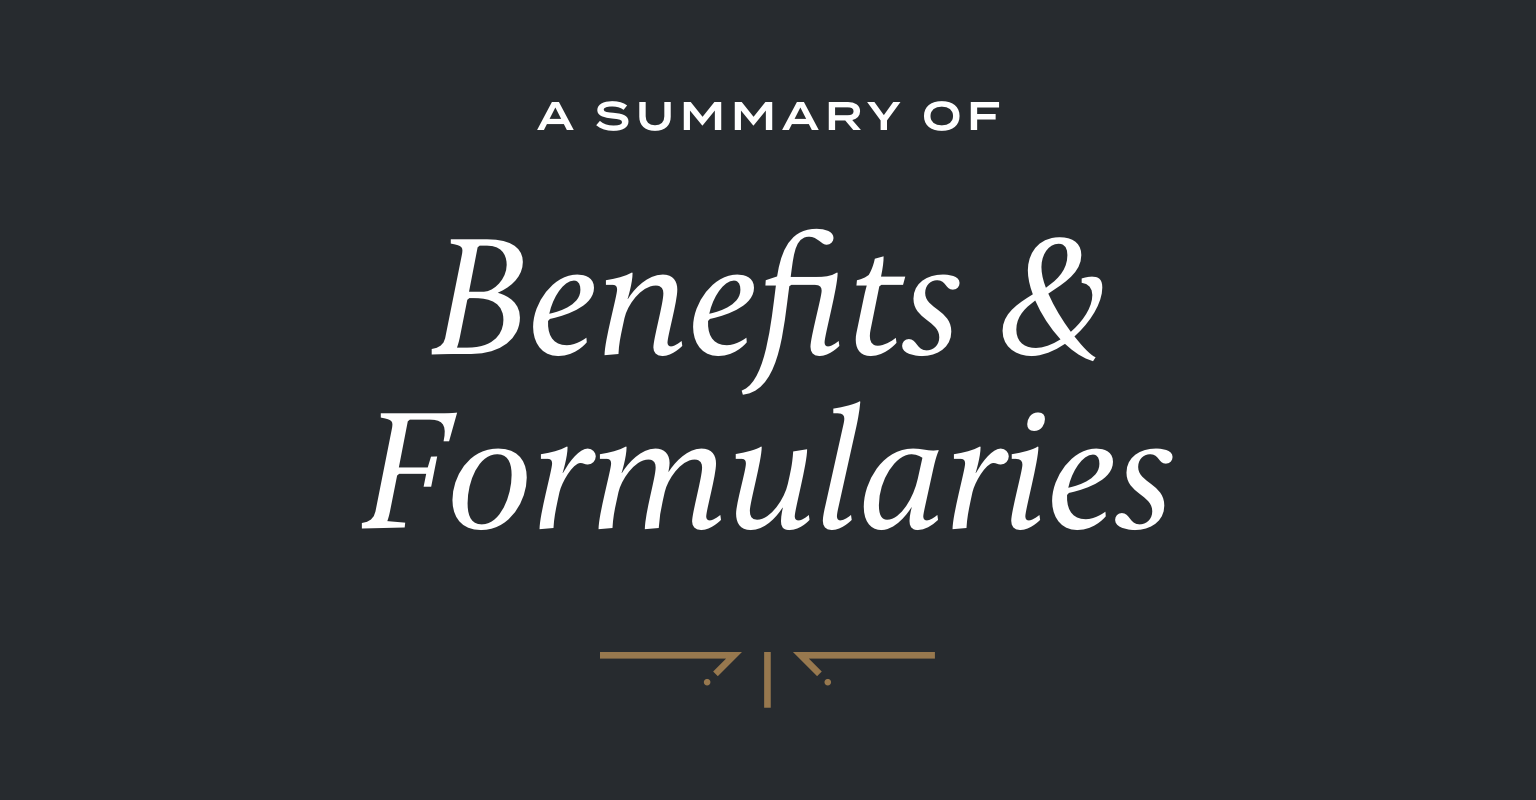 Medicare Plans Summary of Benefits and Formularies